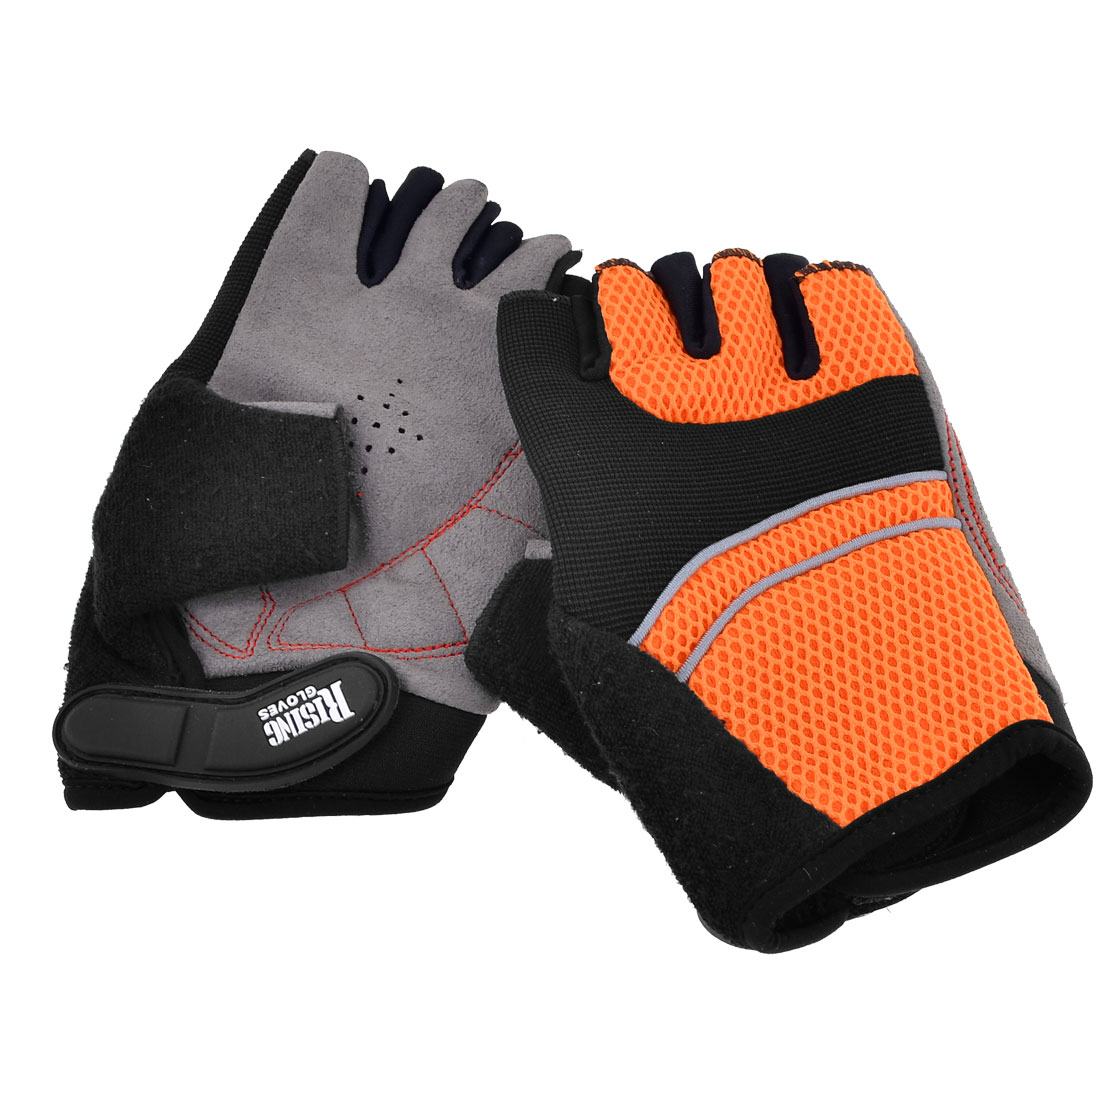 Adult Black Orange Mesh Design Neoprene Rubber Half Finger Sports Glove Pair